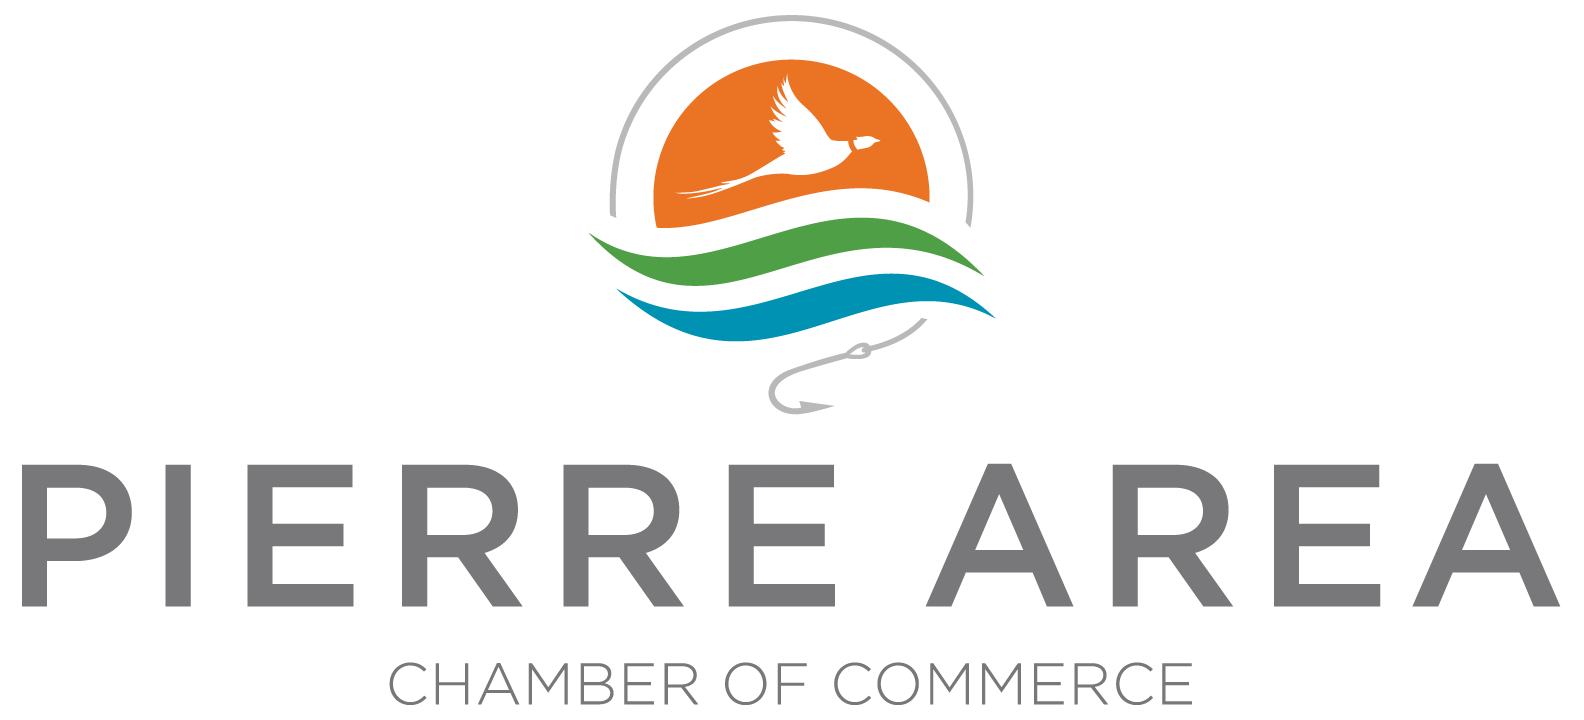 Pierre Area Chamber of Commerce